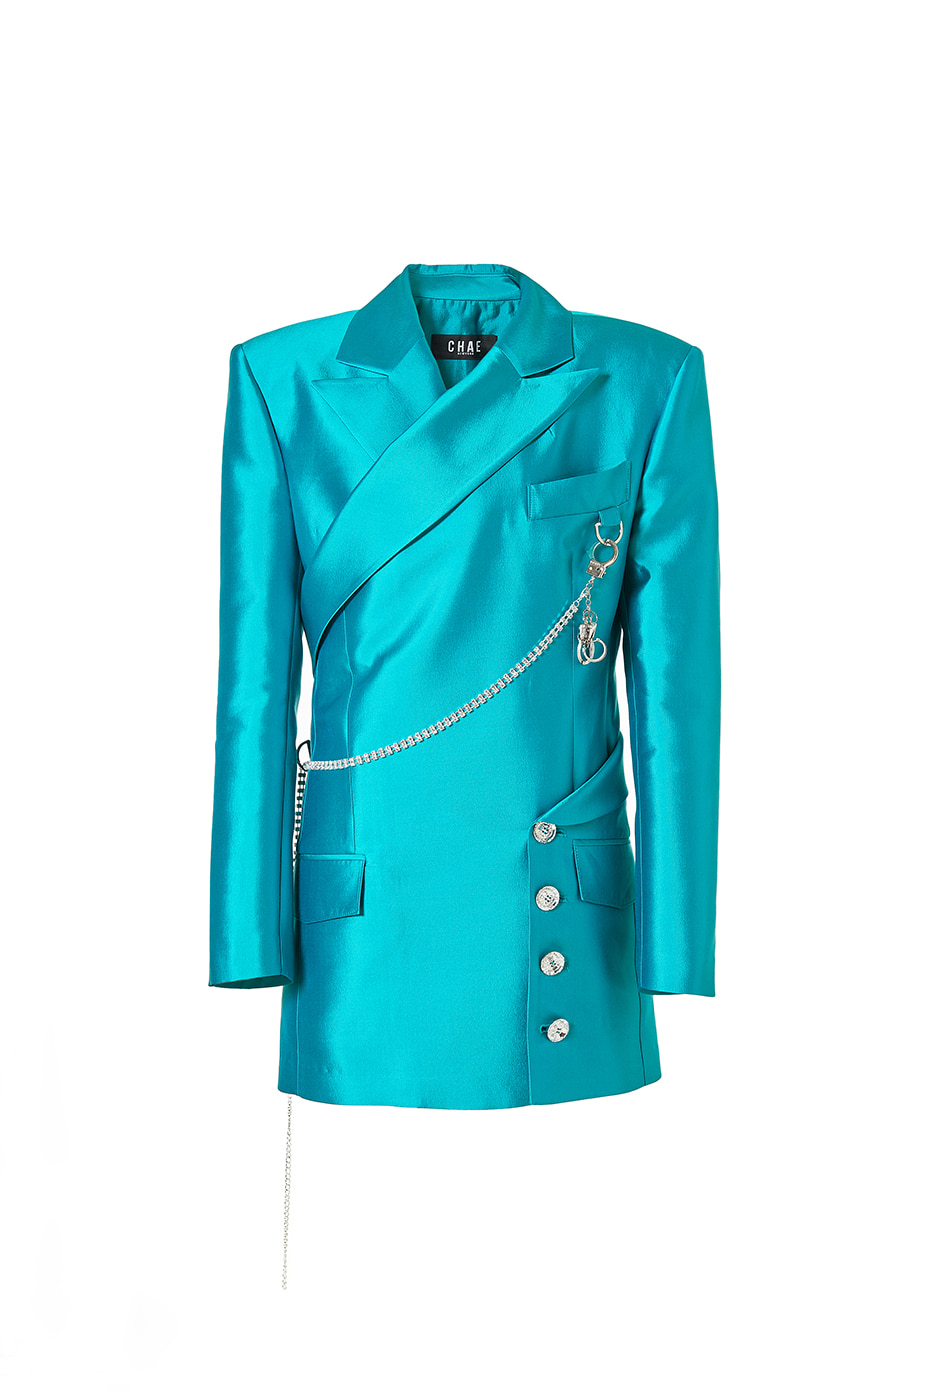 [Runway_Pre-order/Order Made] 360 wrap tailored jacket